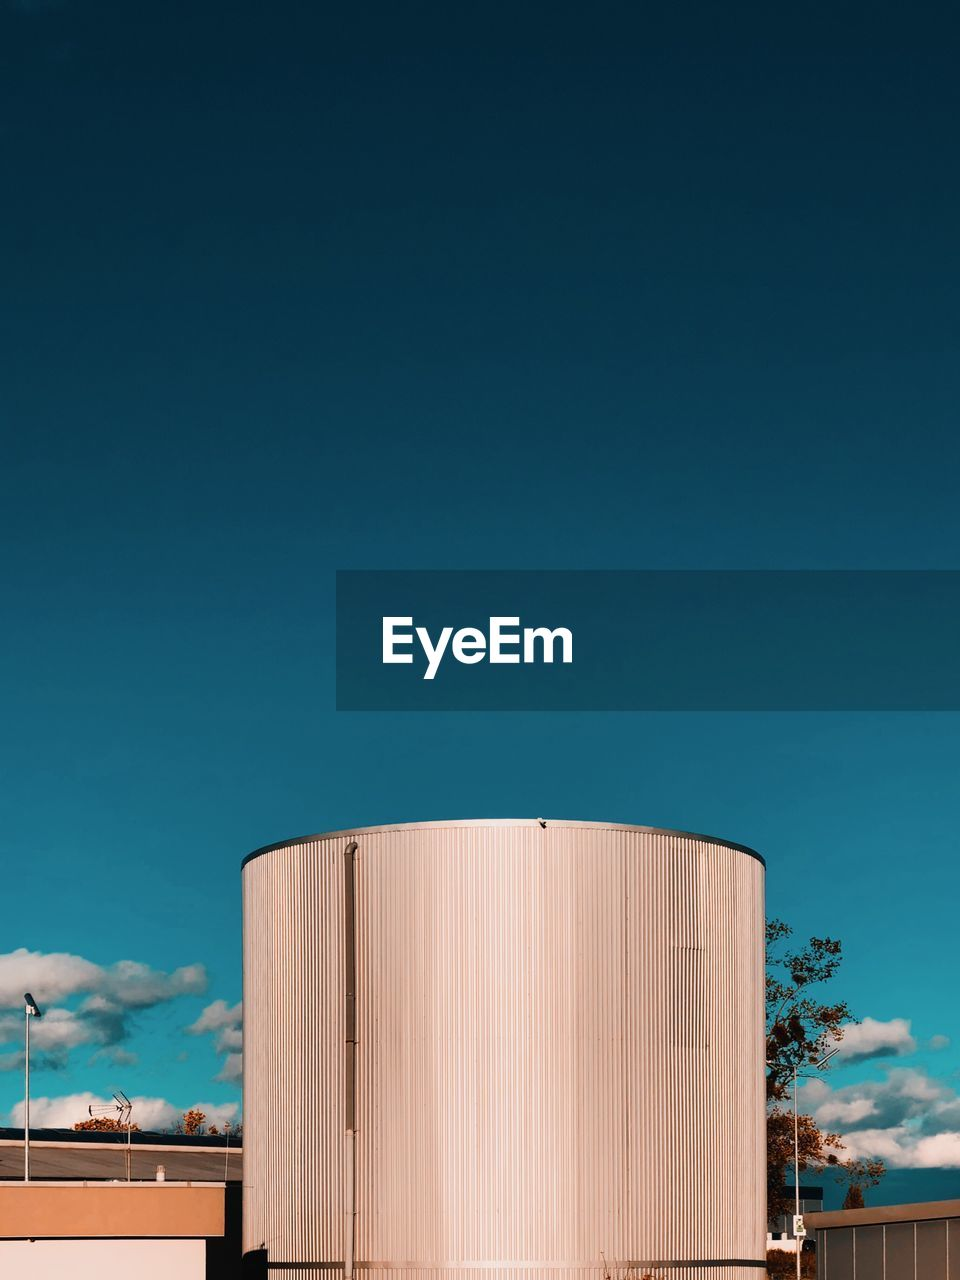 sky, architecture, built structure, copy space, building exterior, blue, industry, low angle view, nature, no people, clear sky, day, silo, factory, outdoors, storage compartment, storage tank, sunlight, fuel and power generation, corrugated